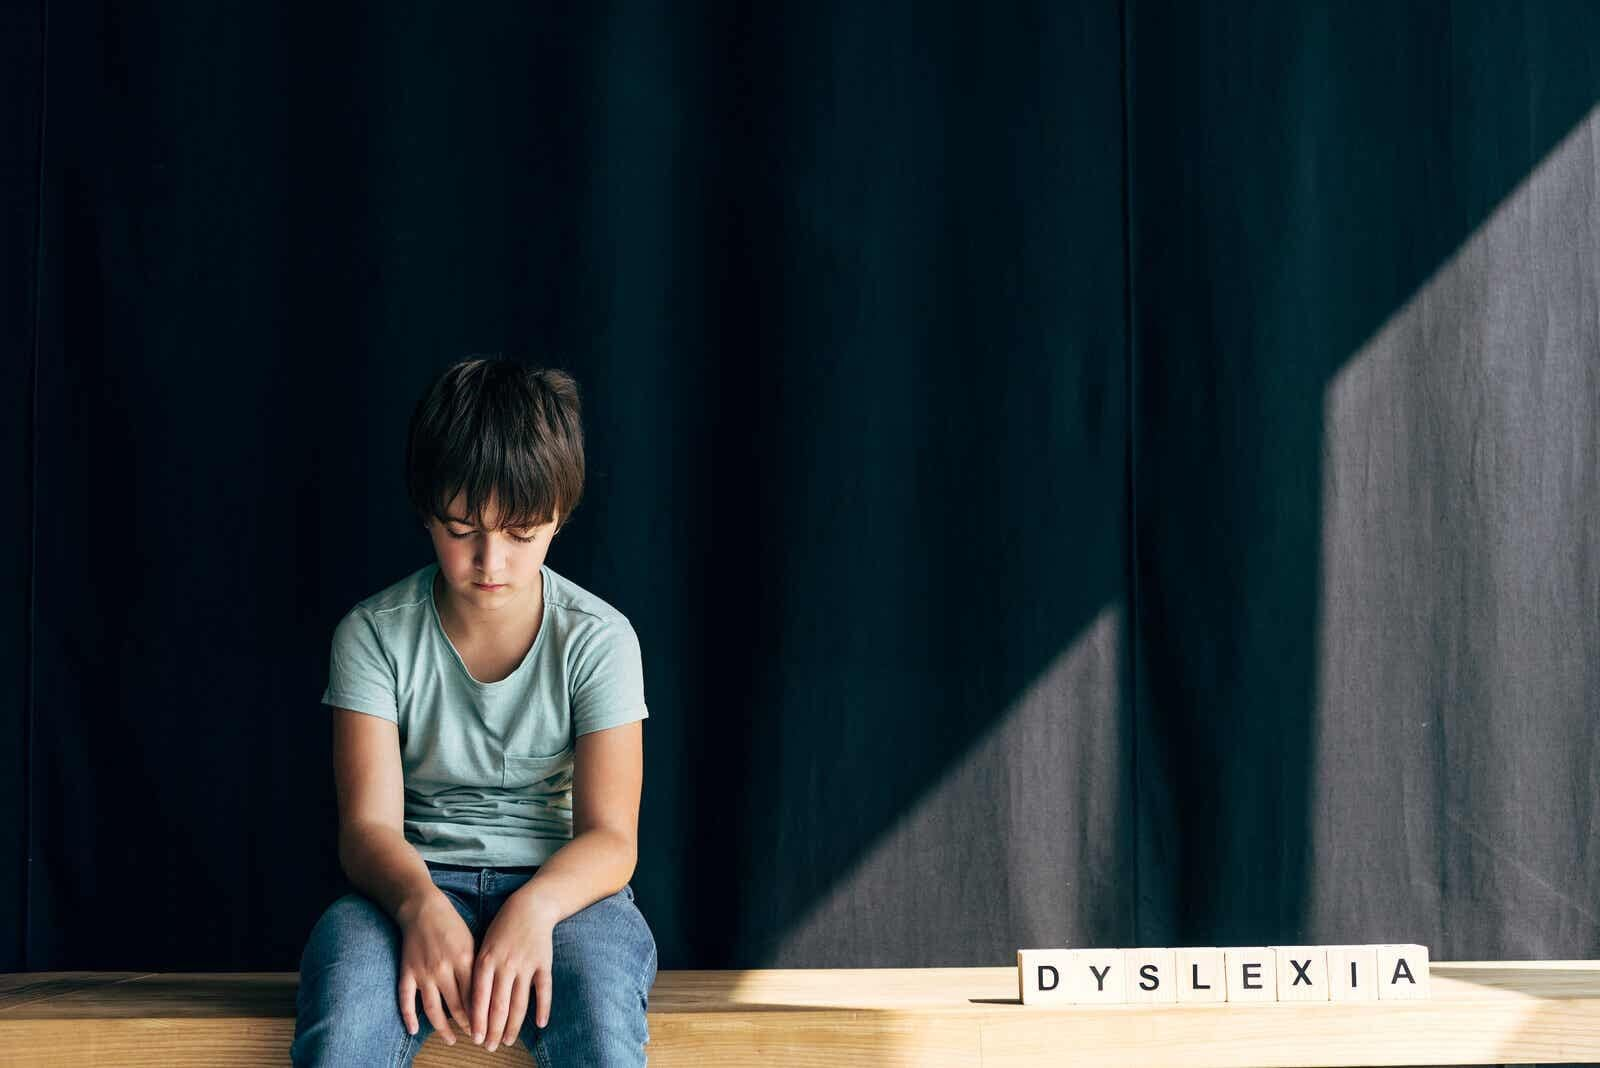 A child with dyslexia needs to be addressed in the classroom in an inclusive manner.